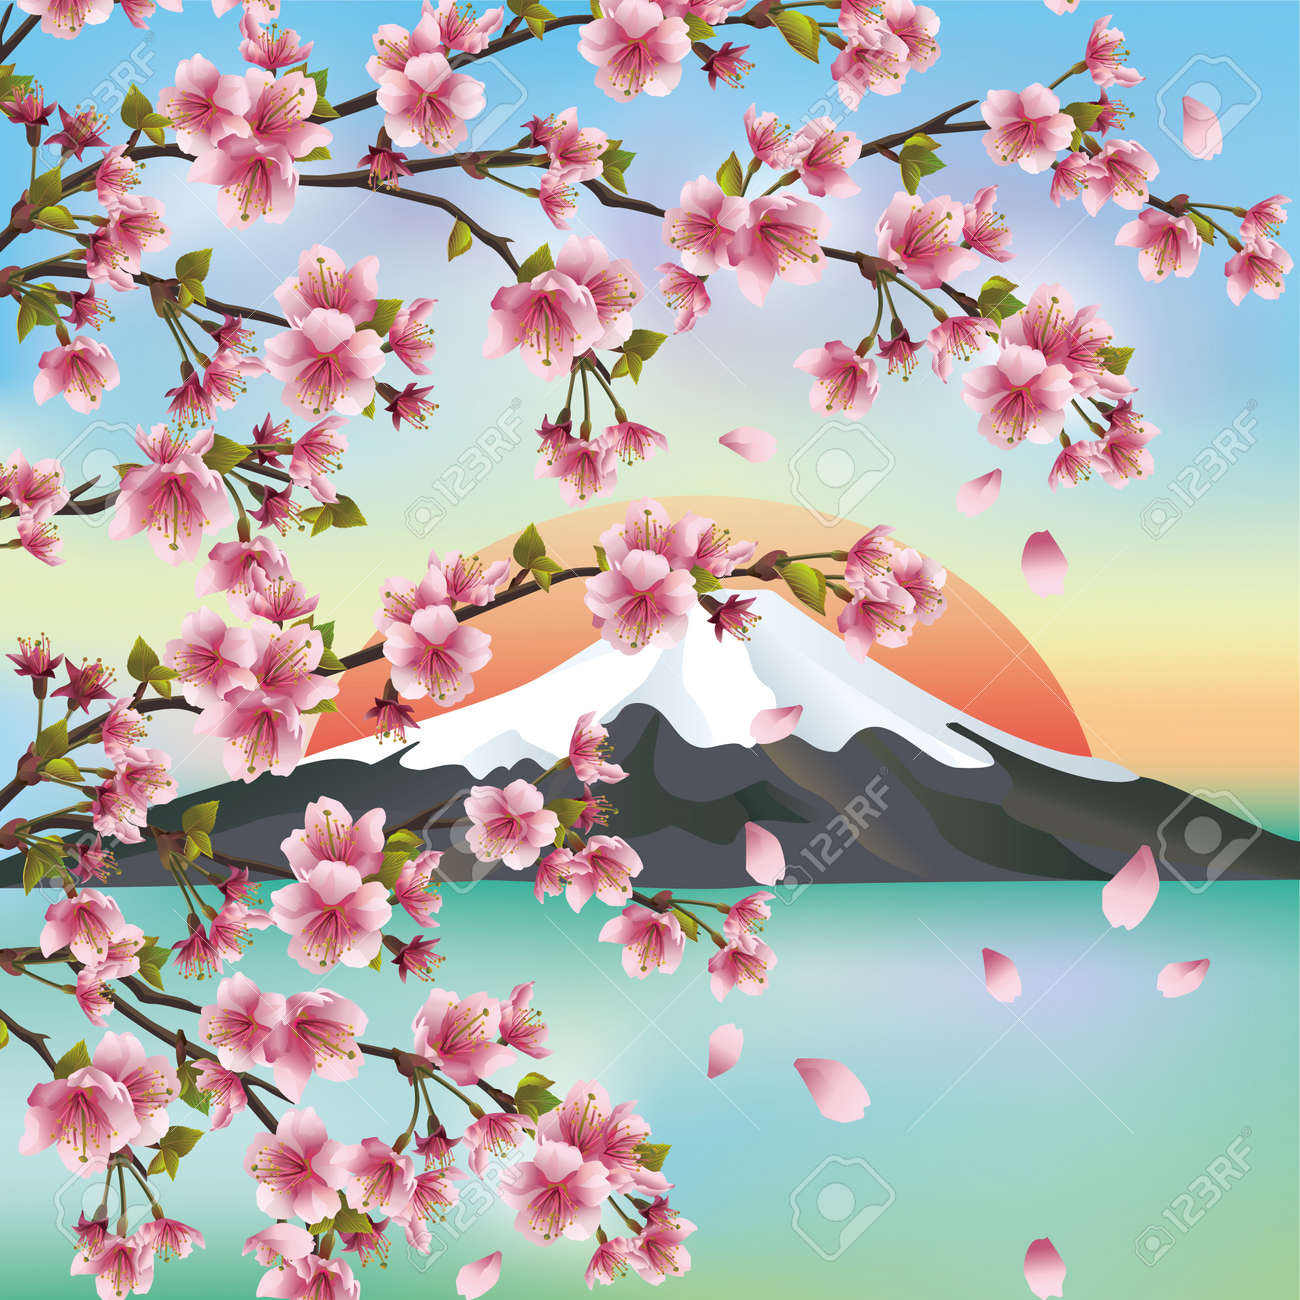 Japanese Background With Mountain And Sakura Blossom Cherry Tree Symbols Of Oriental Culture